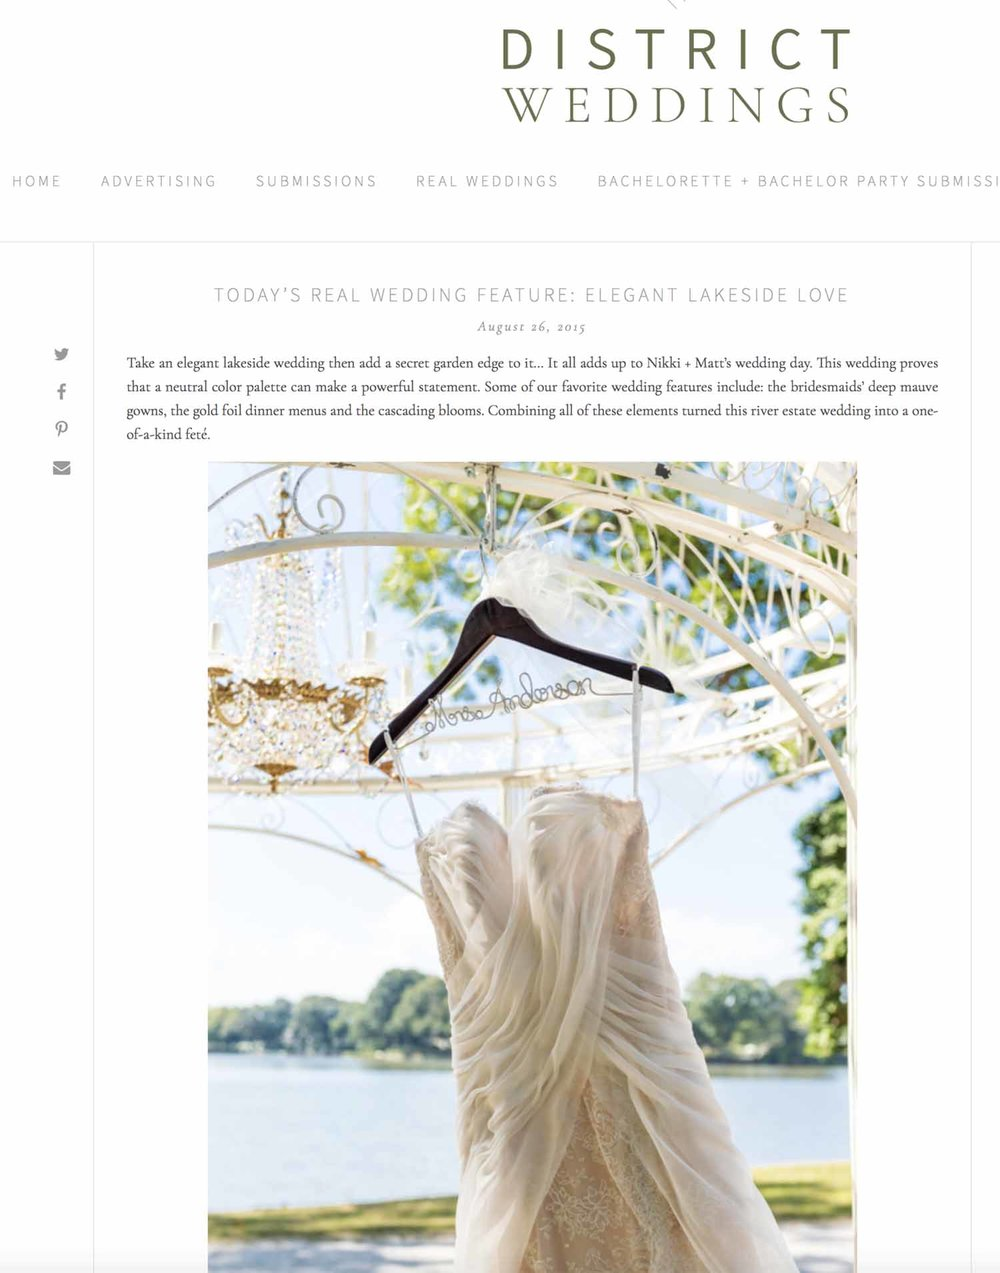 To see more of this elegant Maryland waterfront wedding on the Chesapeake Bay, click the image above.